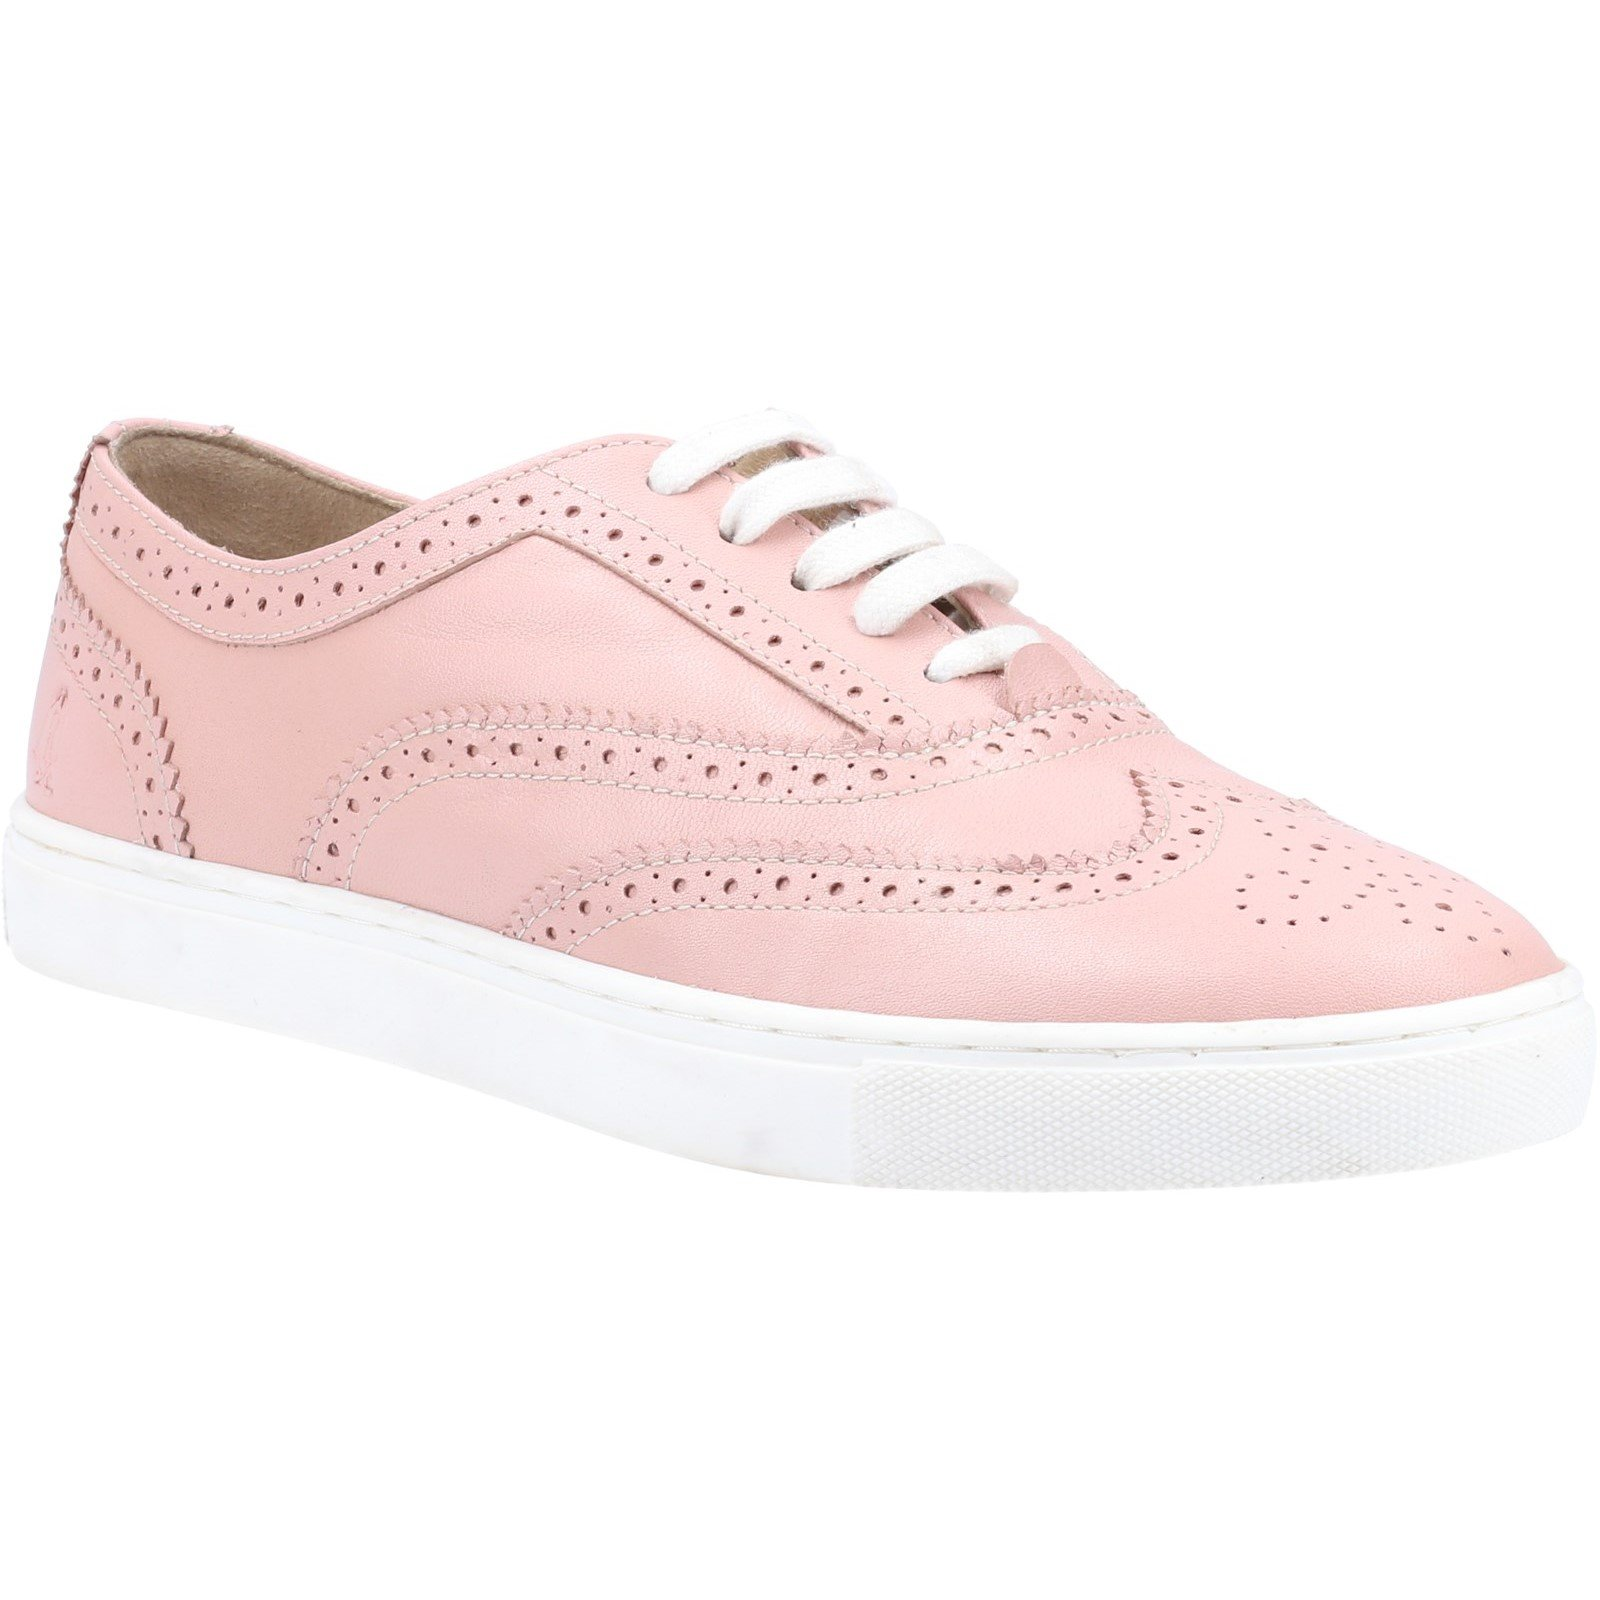 Hush Puppies Women's Tammy Trainer Various Colours 32847 - Blush 8